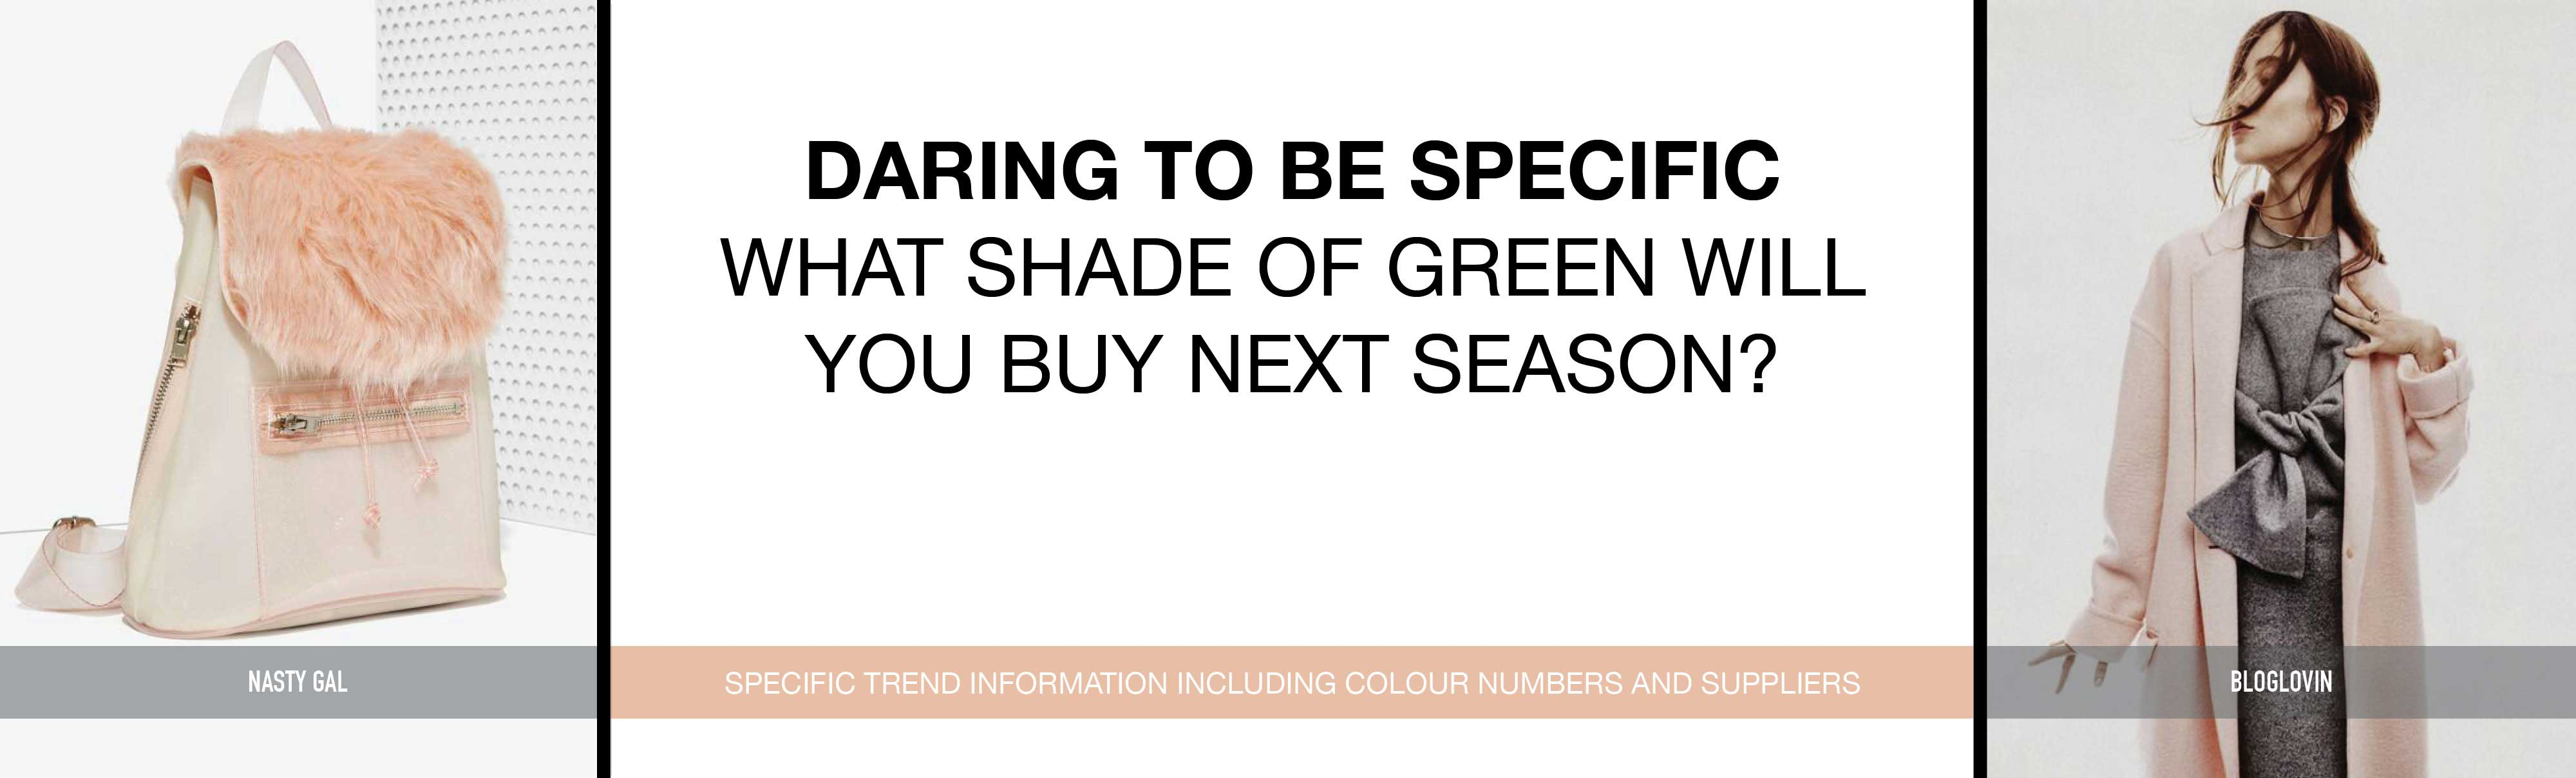 Daring to be specific - What shade of green will you buy next season?